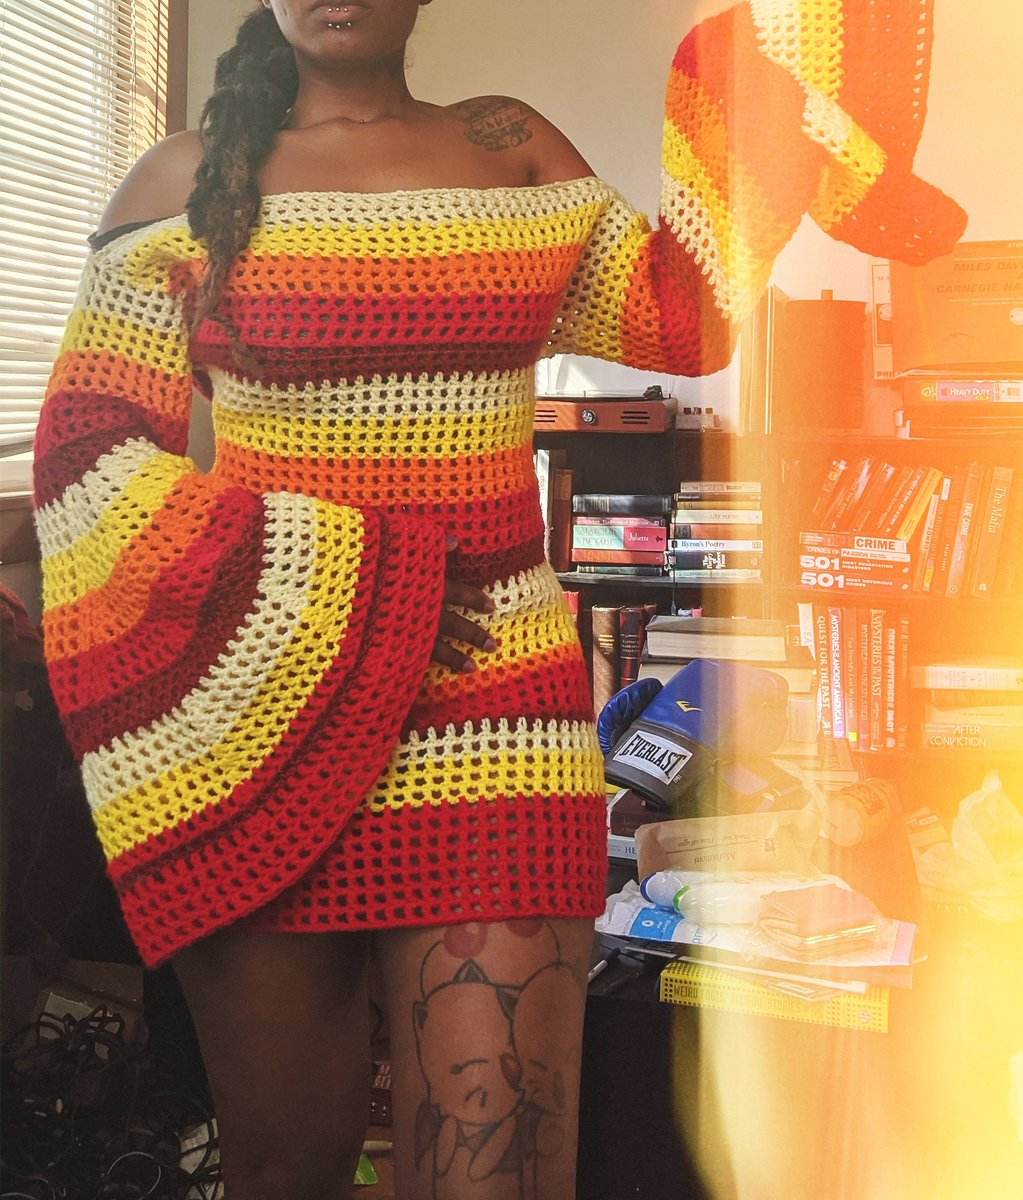 RT @eurythmik: Anabelle Sweater Dress is coming back ❤️🔥 handmade in all sizes and colors https://t.co/tt1yOSsQbv